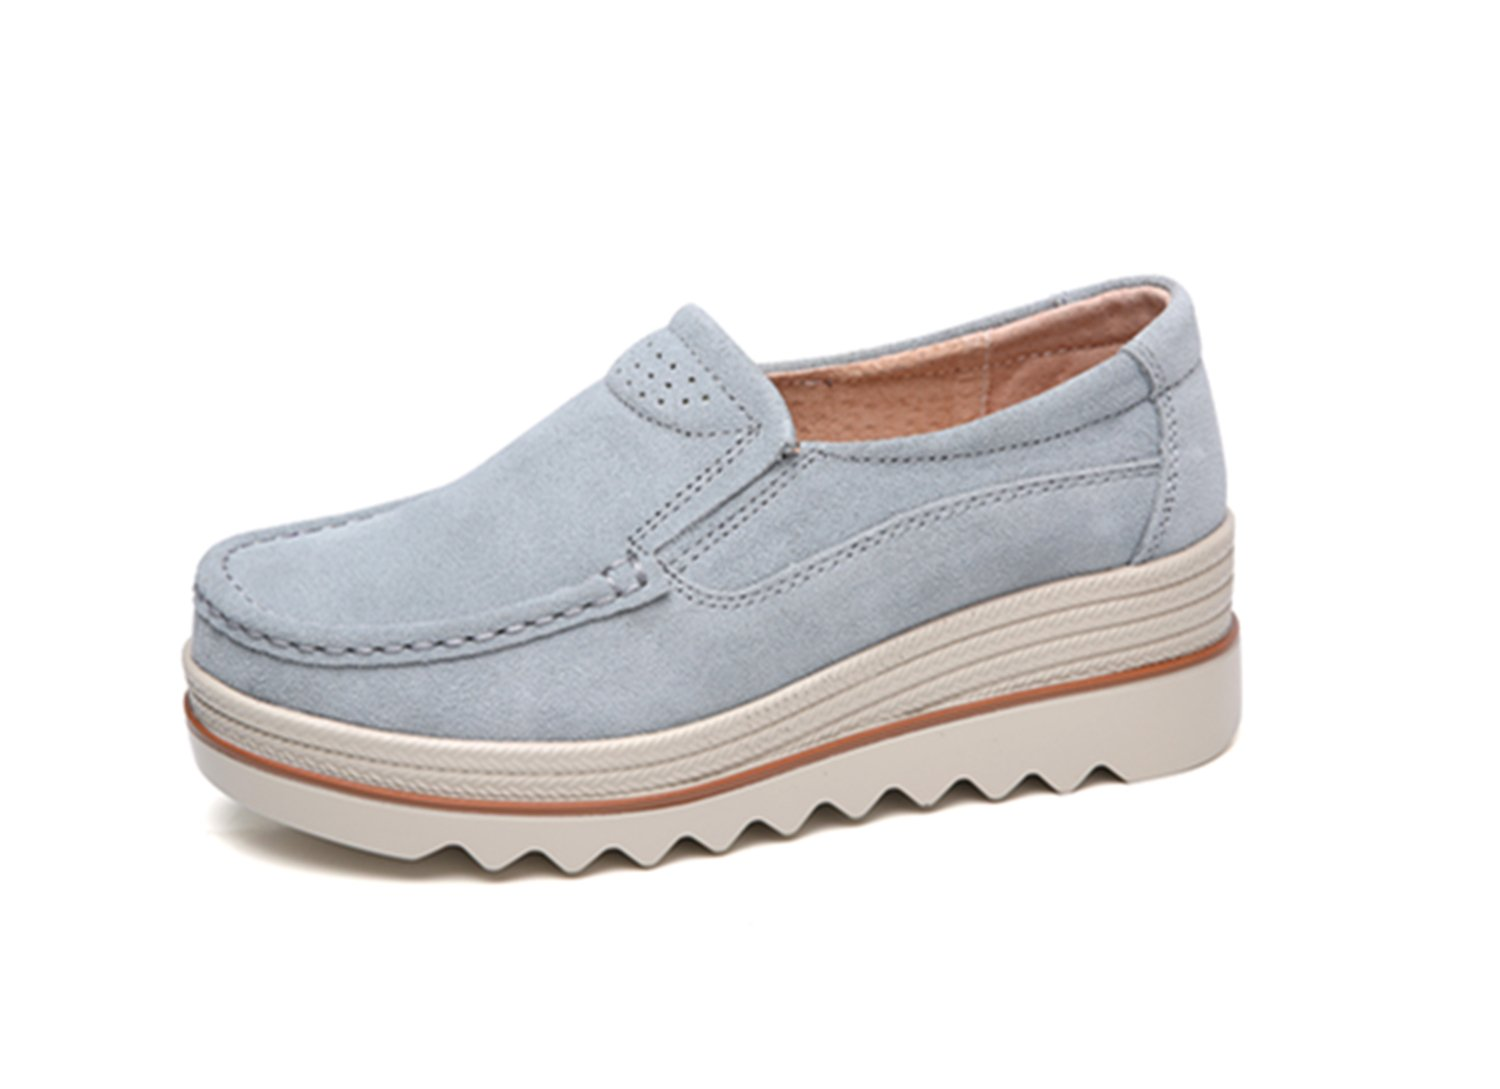 Dhiuow Platform Shoes Women Slip on Loafers Suede Wedge Shoes Comfortable Sneakers for Ladies B07CBC2NGX 5.5 B(M) US|Gray#1